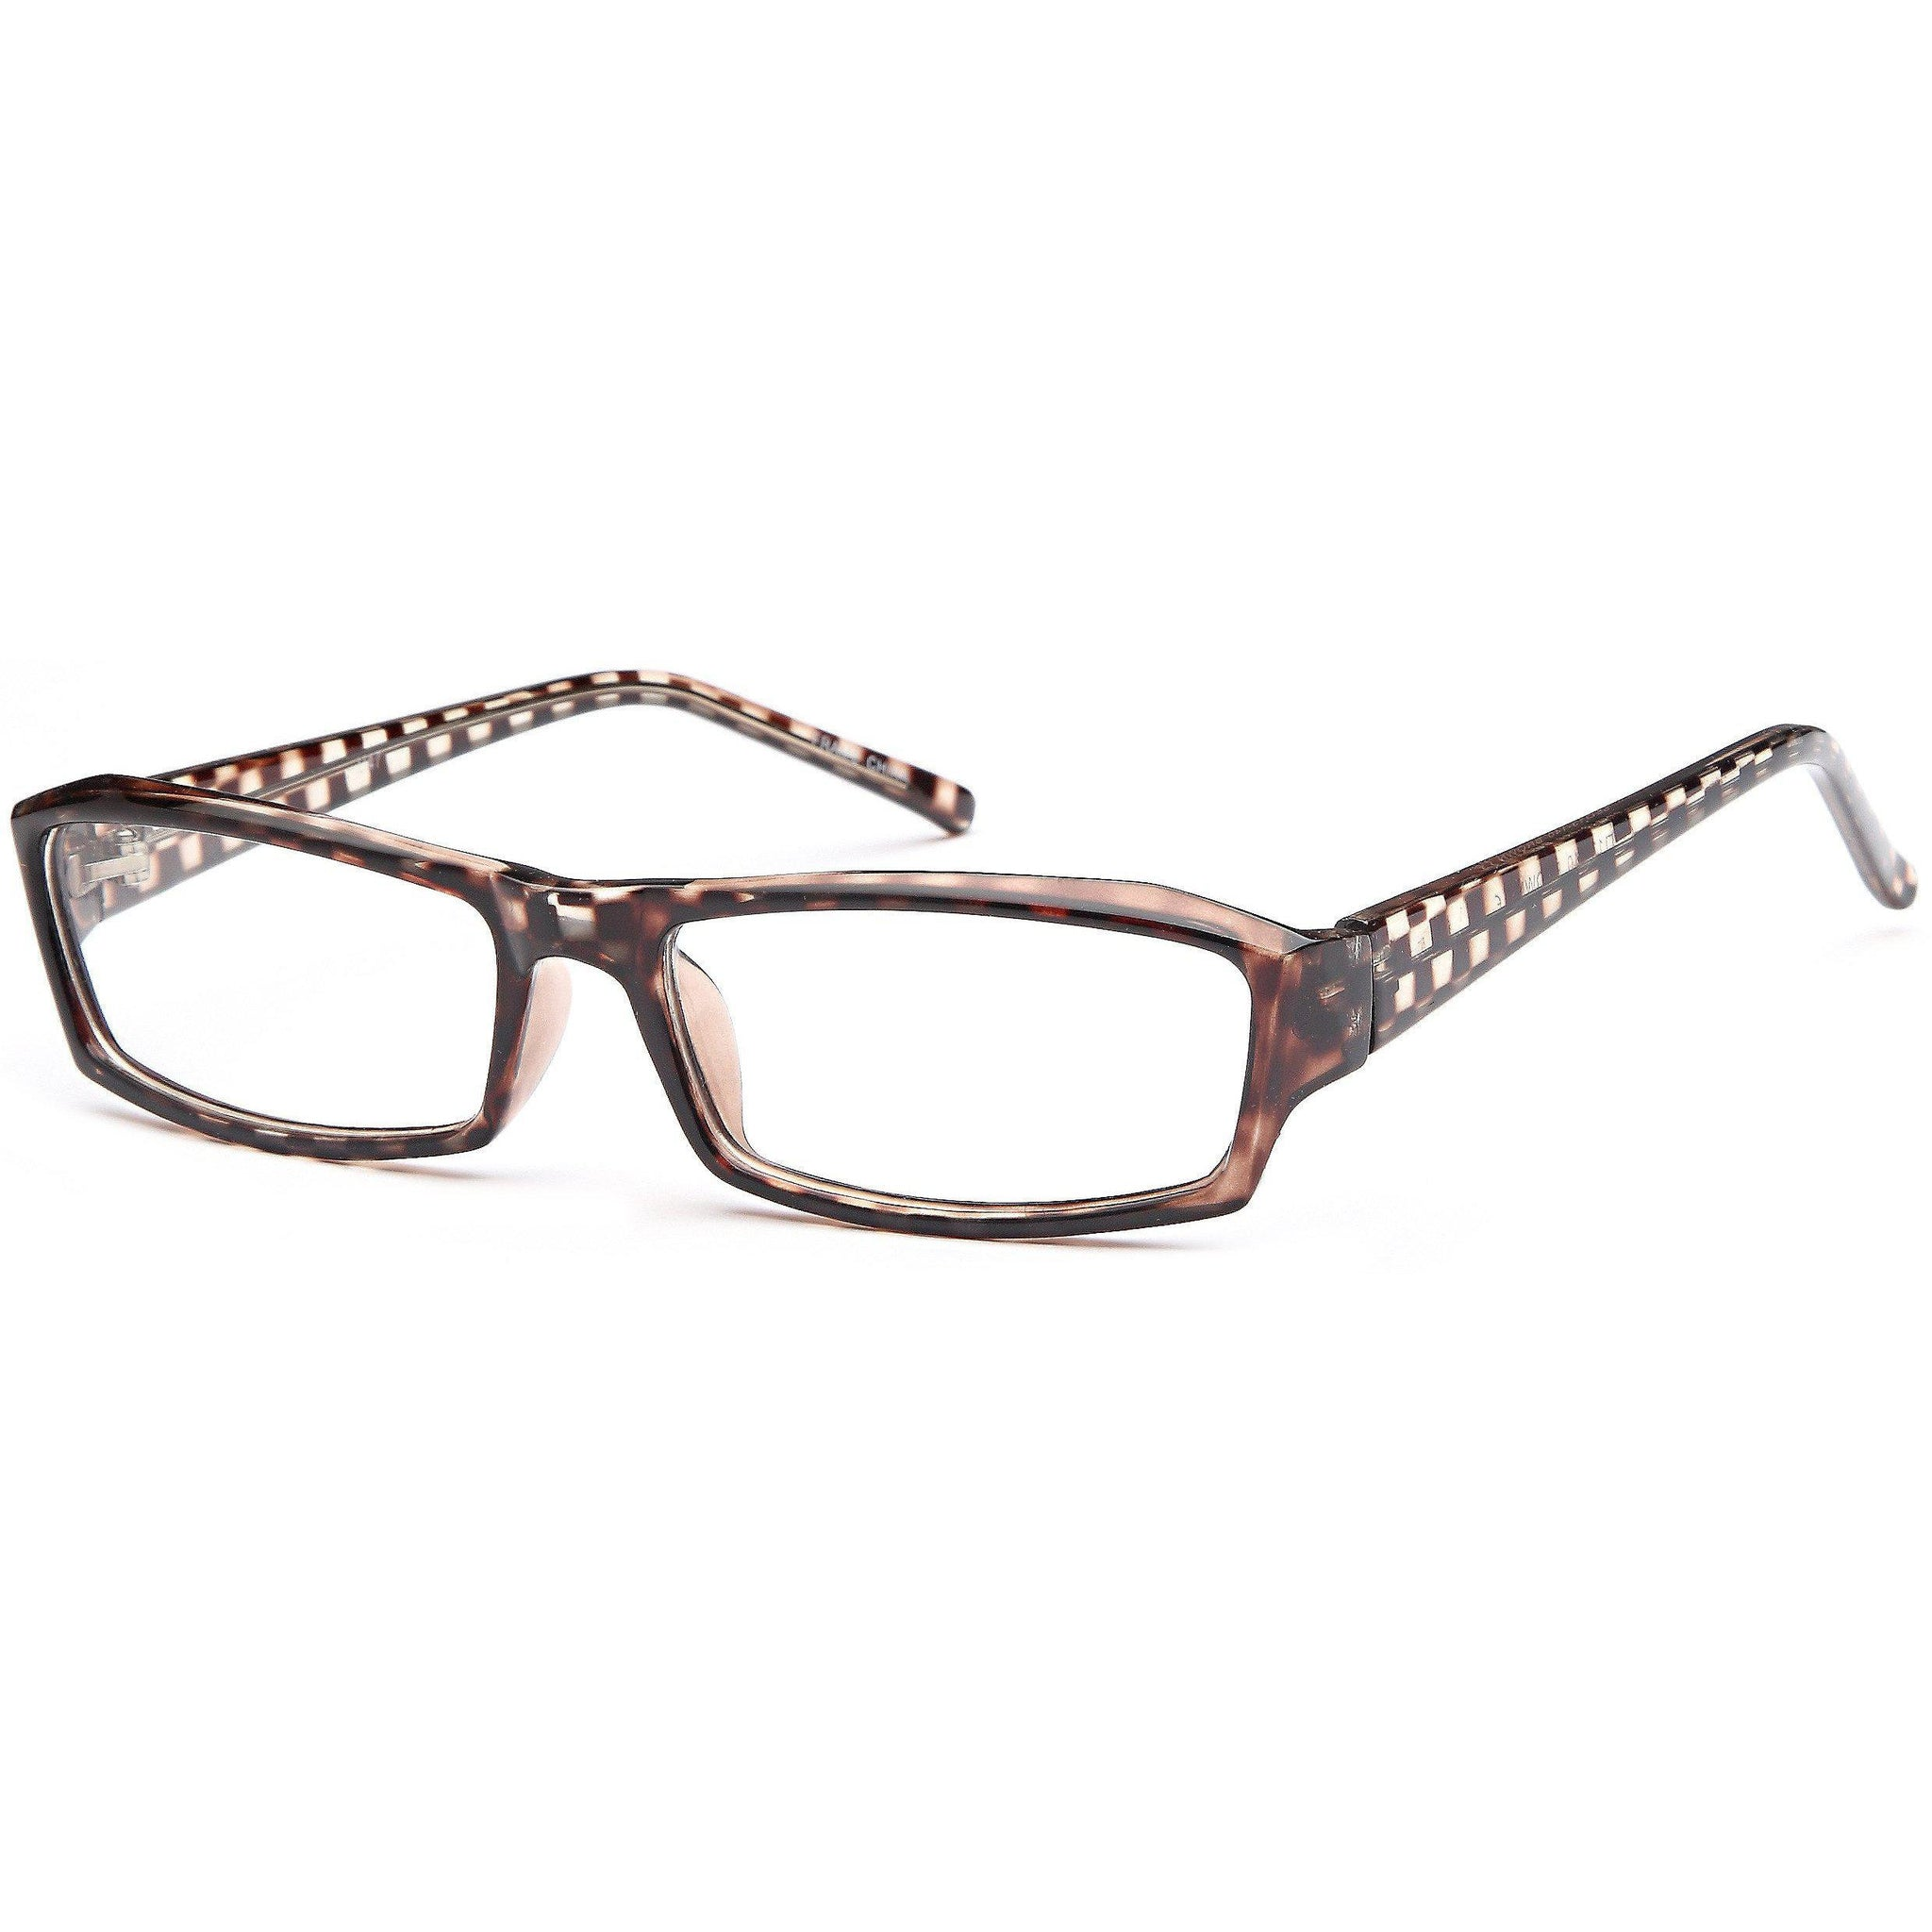 4U Prescription Glasses U 47 Optical Eyeglasses Frame - timetoshade